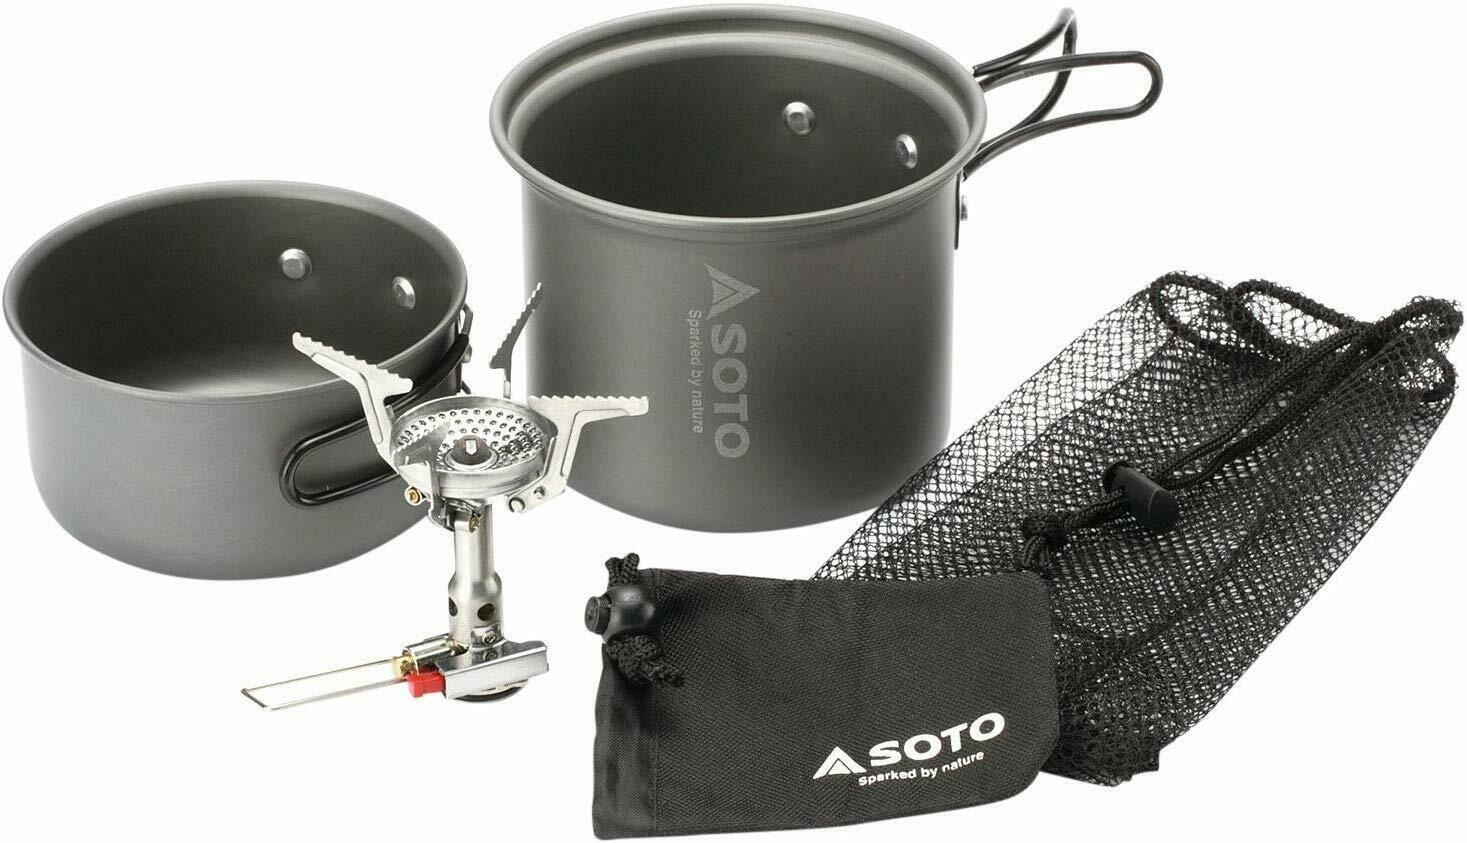 SOTO soto Amika Cooker Combo SOD-320CC With Tracking From JAPAN F S